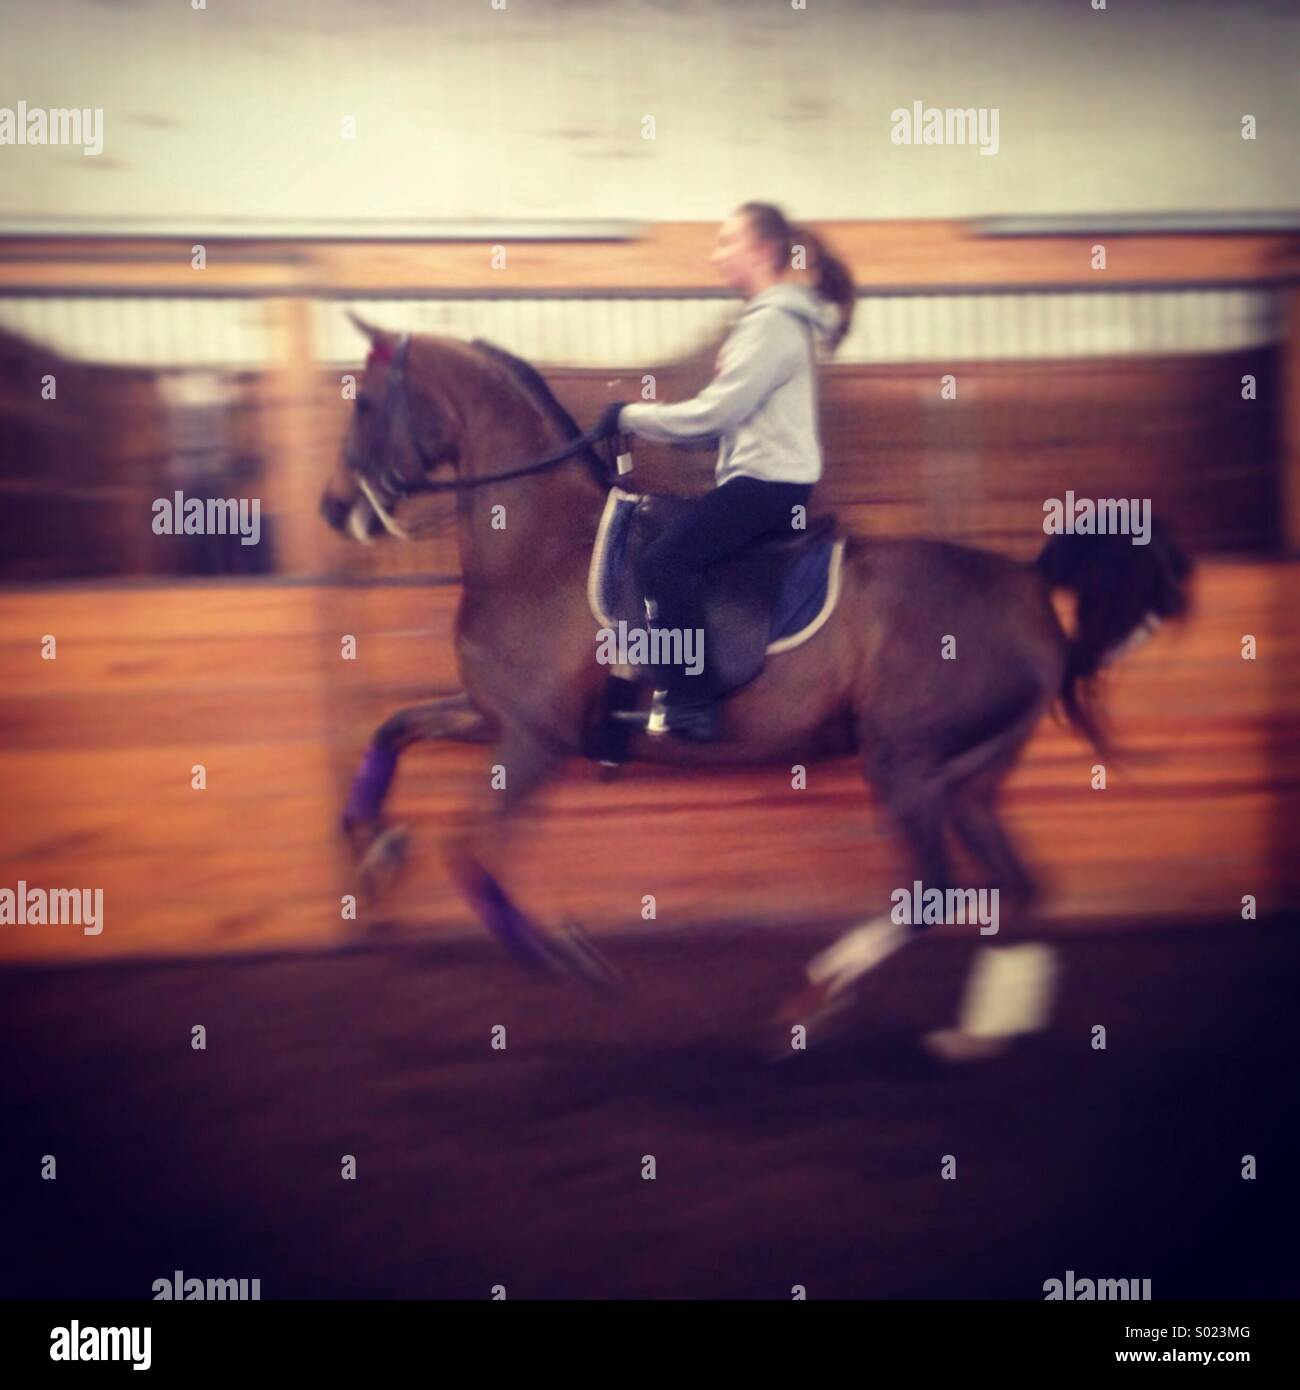 Girl riding horse - Stock Image